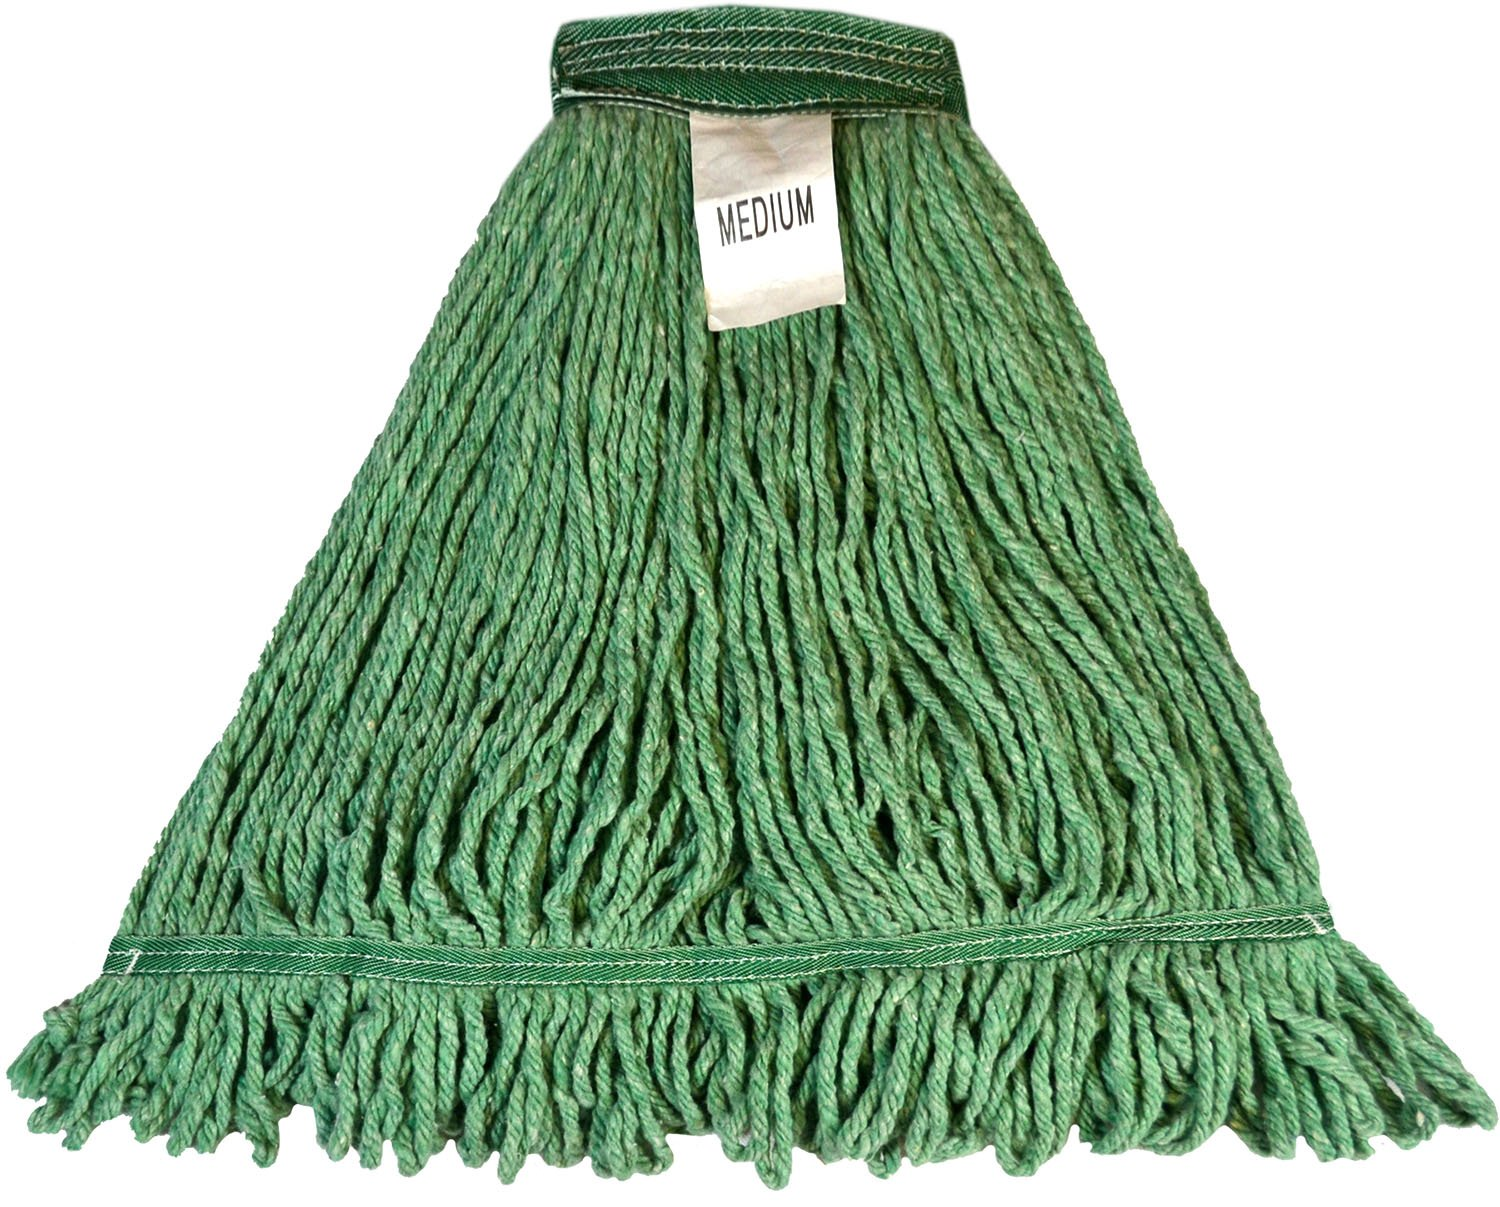 2WORK 2W04288 Socket Mop 12 oz Pack of 10 Green Twine Rough